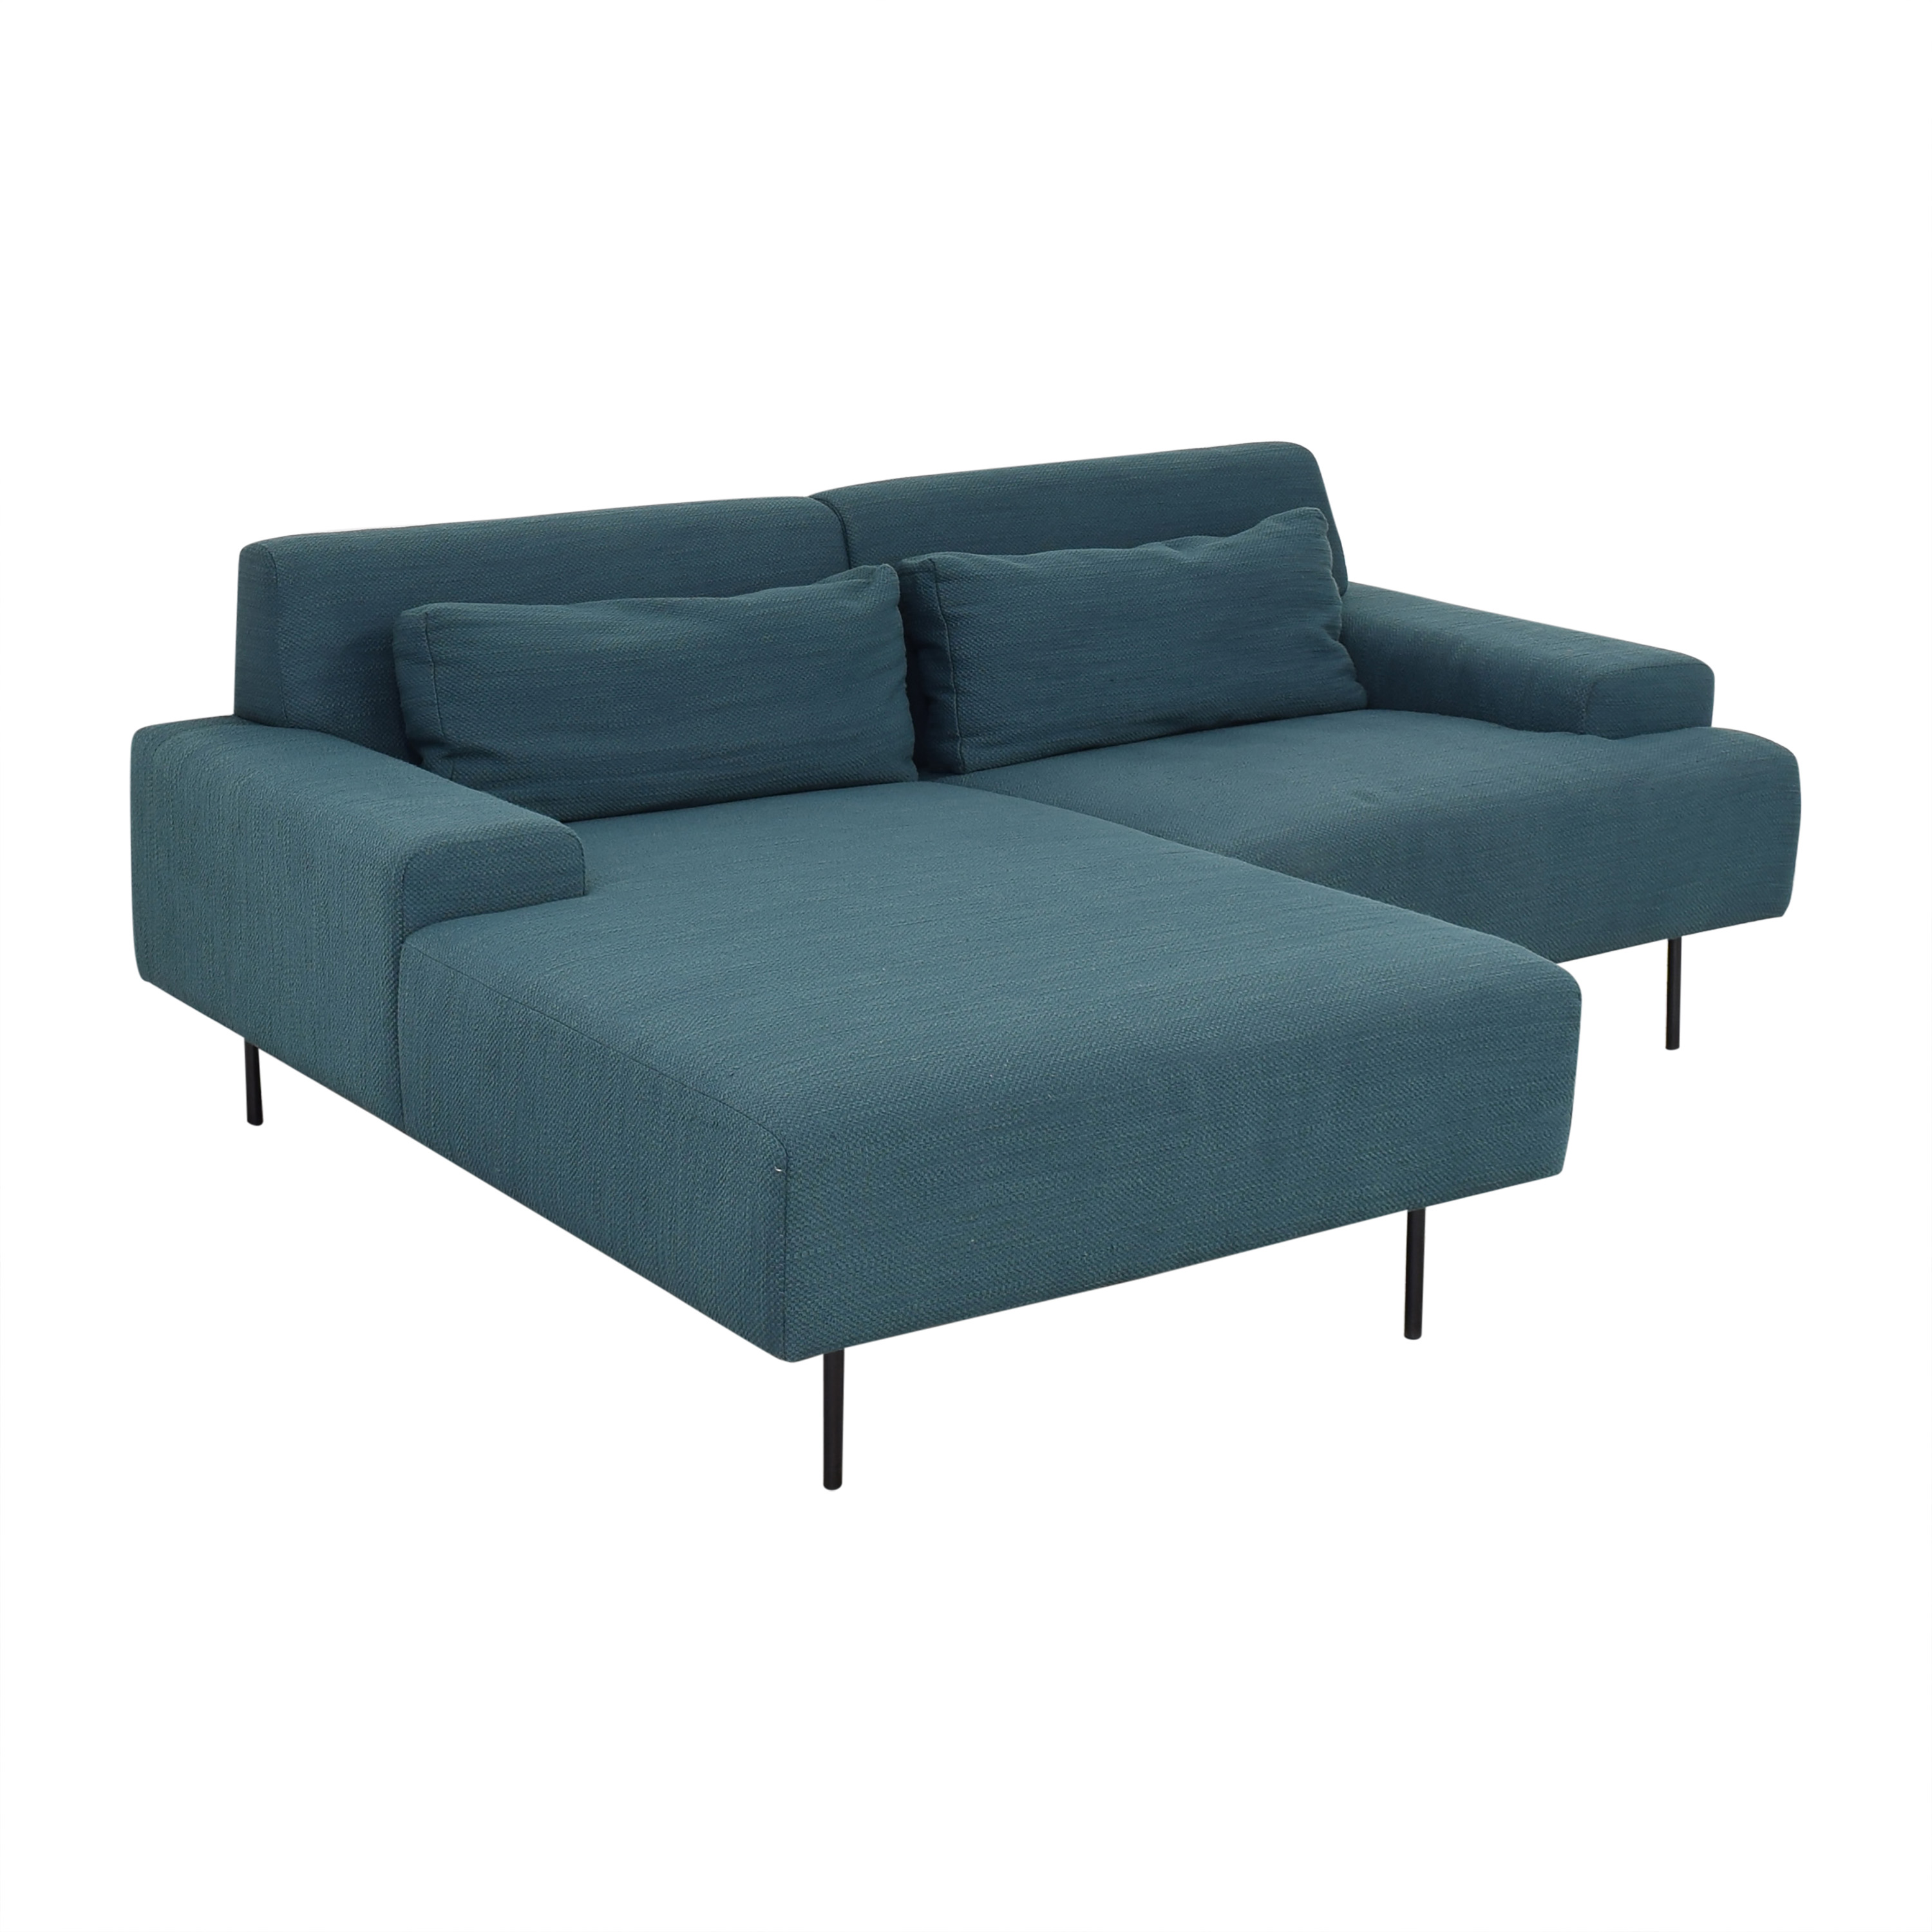 West Elm Beckham Chaise Sectional Sofa / Sectionals